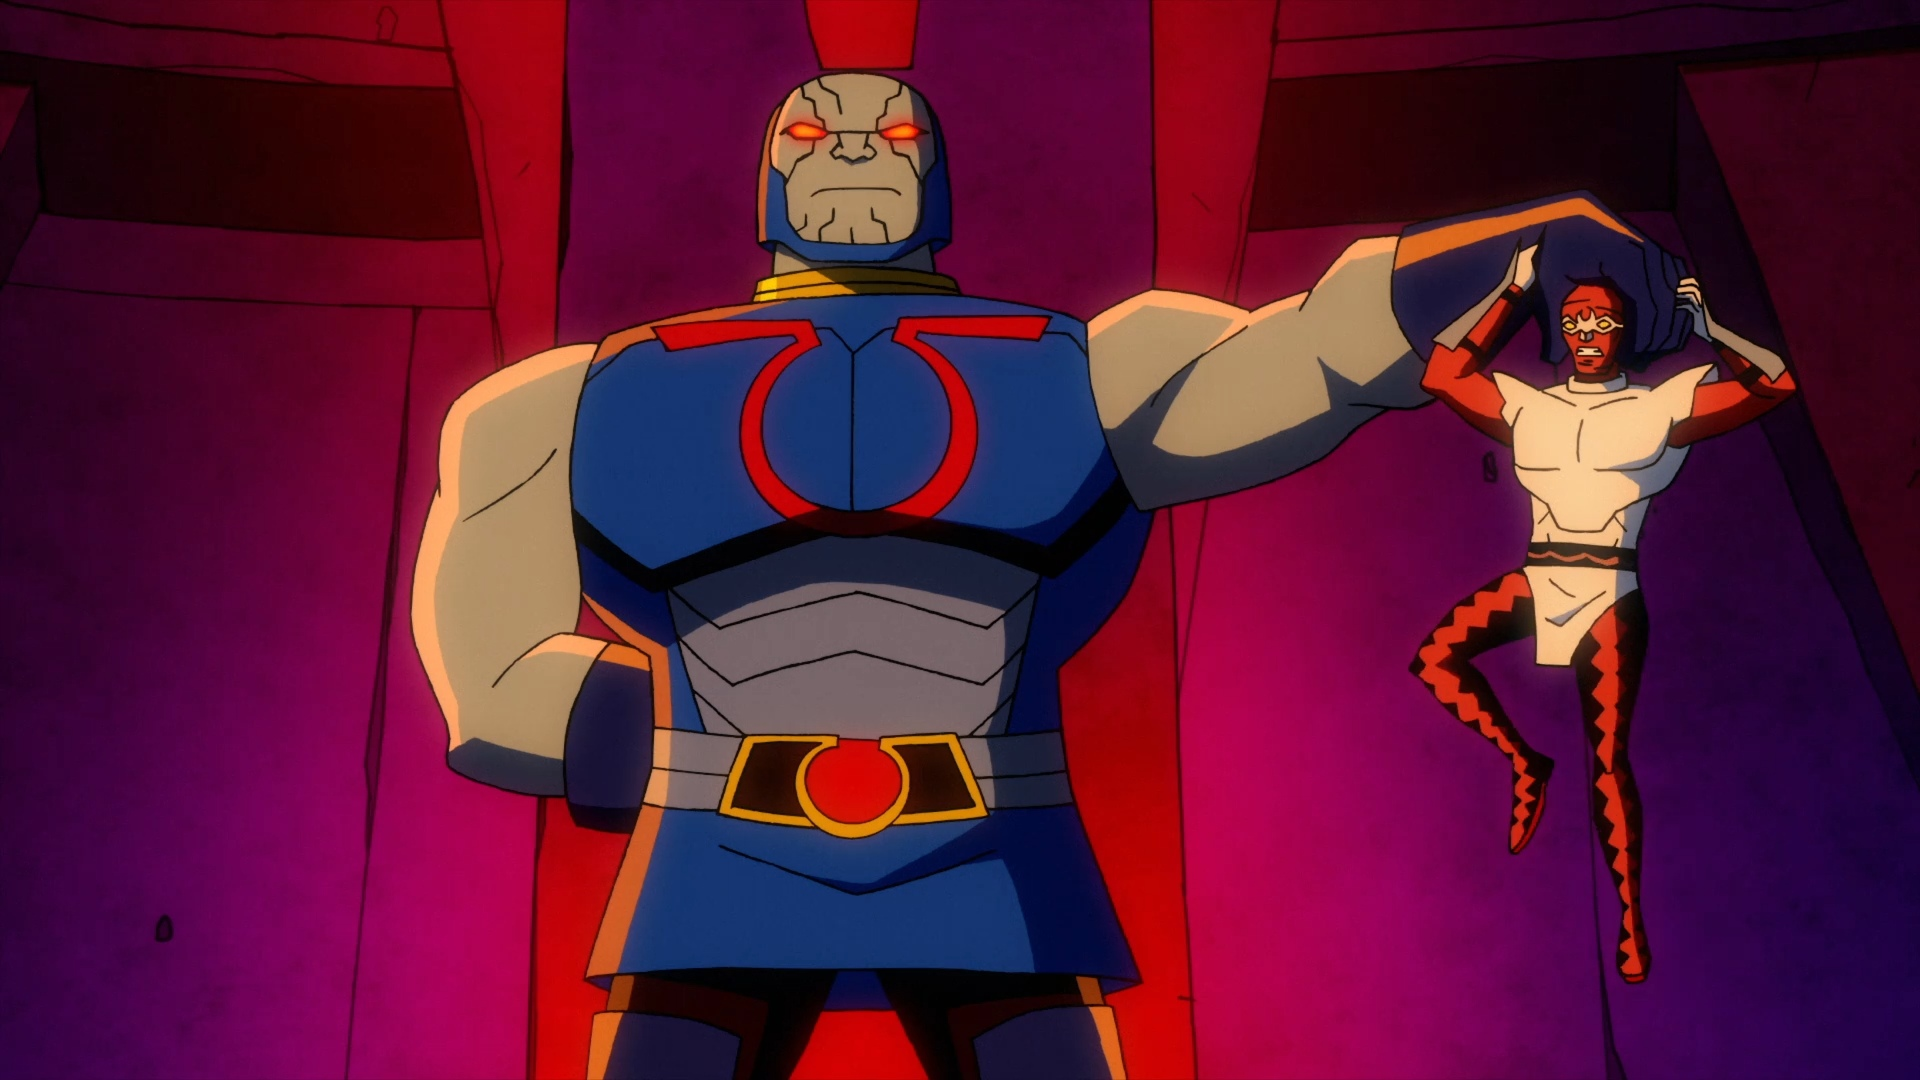 Darkseid (Harley Quinn TV Series)